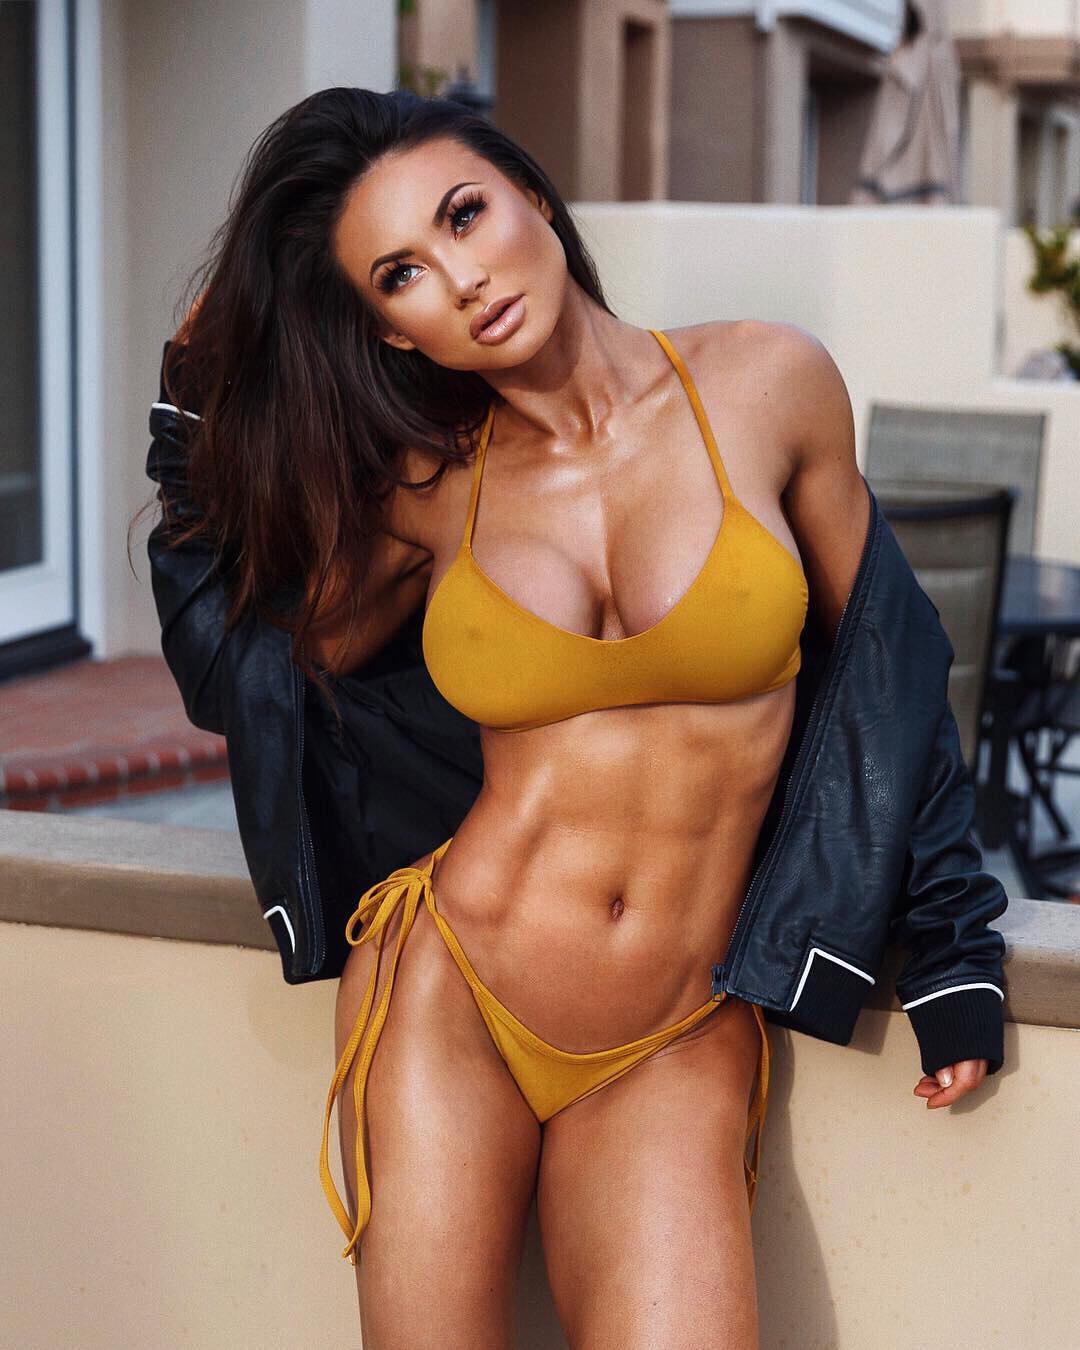 Michie Peachie - michie_peachie - The Fitness Girlz